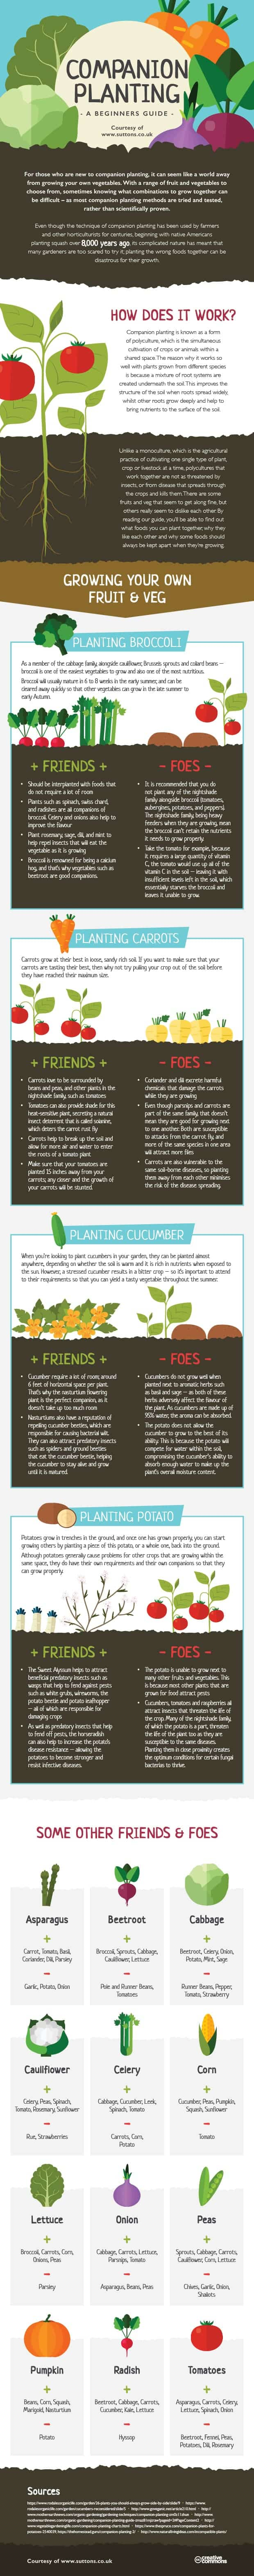 A Beginners Guide to Companion Planting